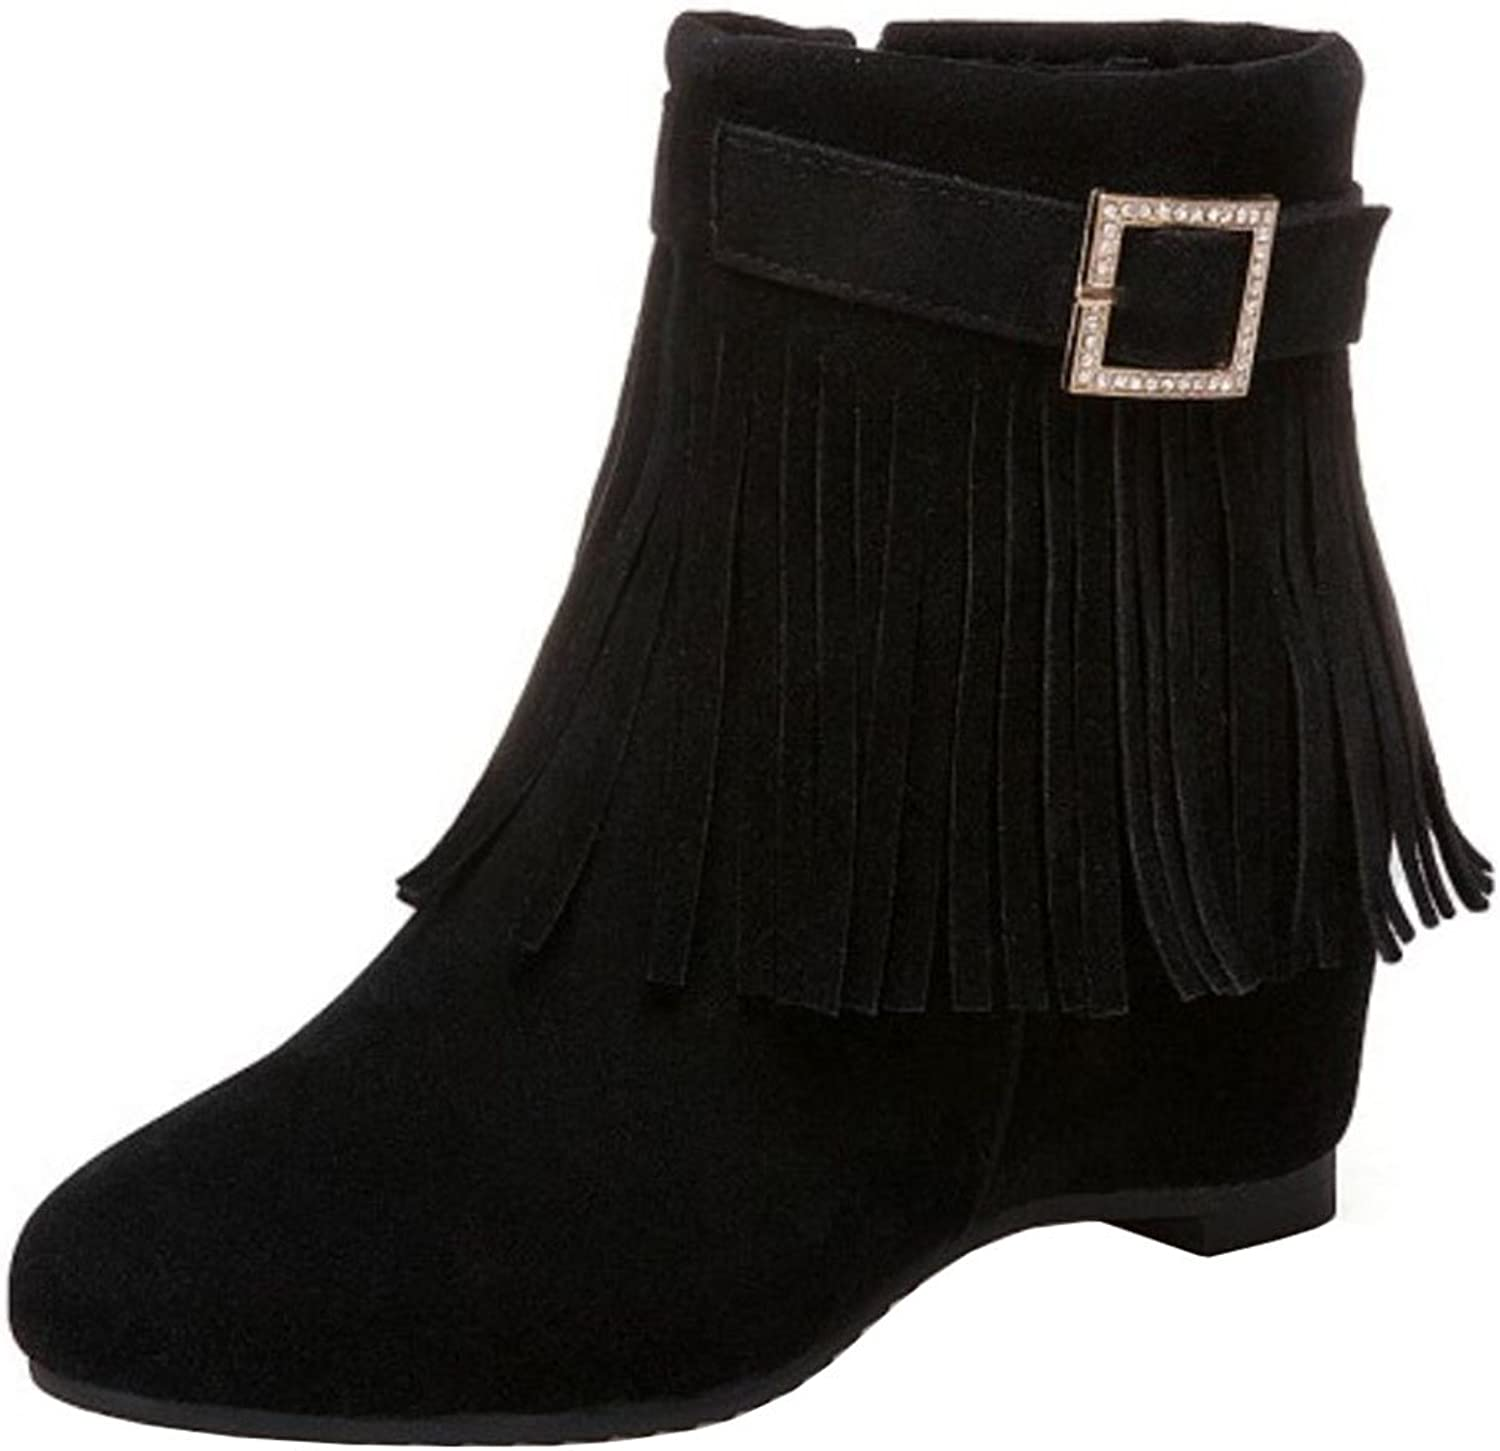 Melady Women Casual Fringe Boots Ankle High Booties Flats Zipper Grey Size 43